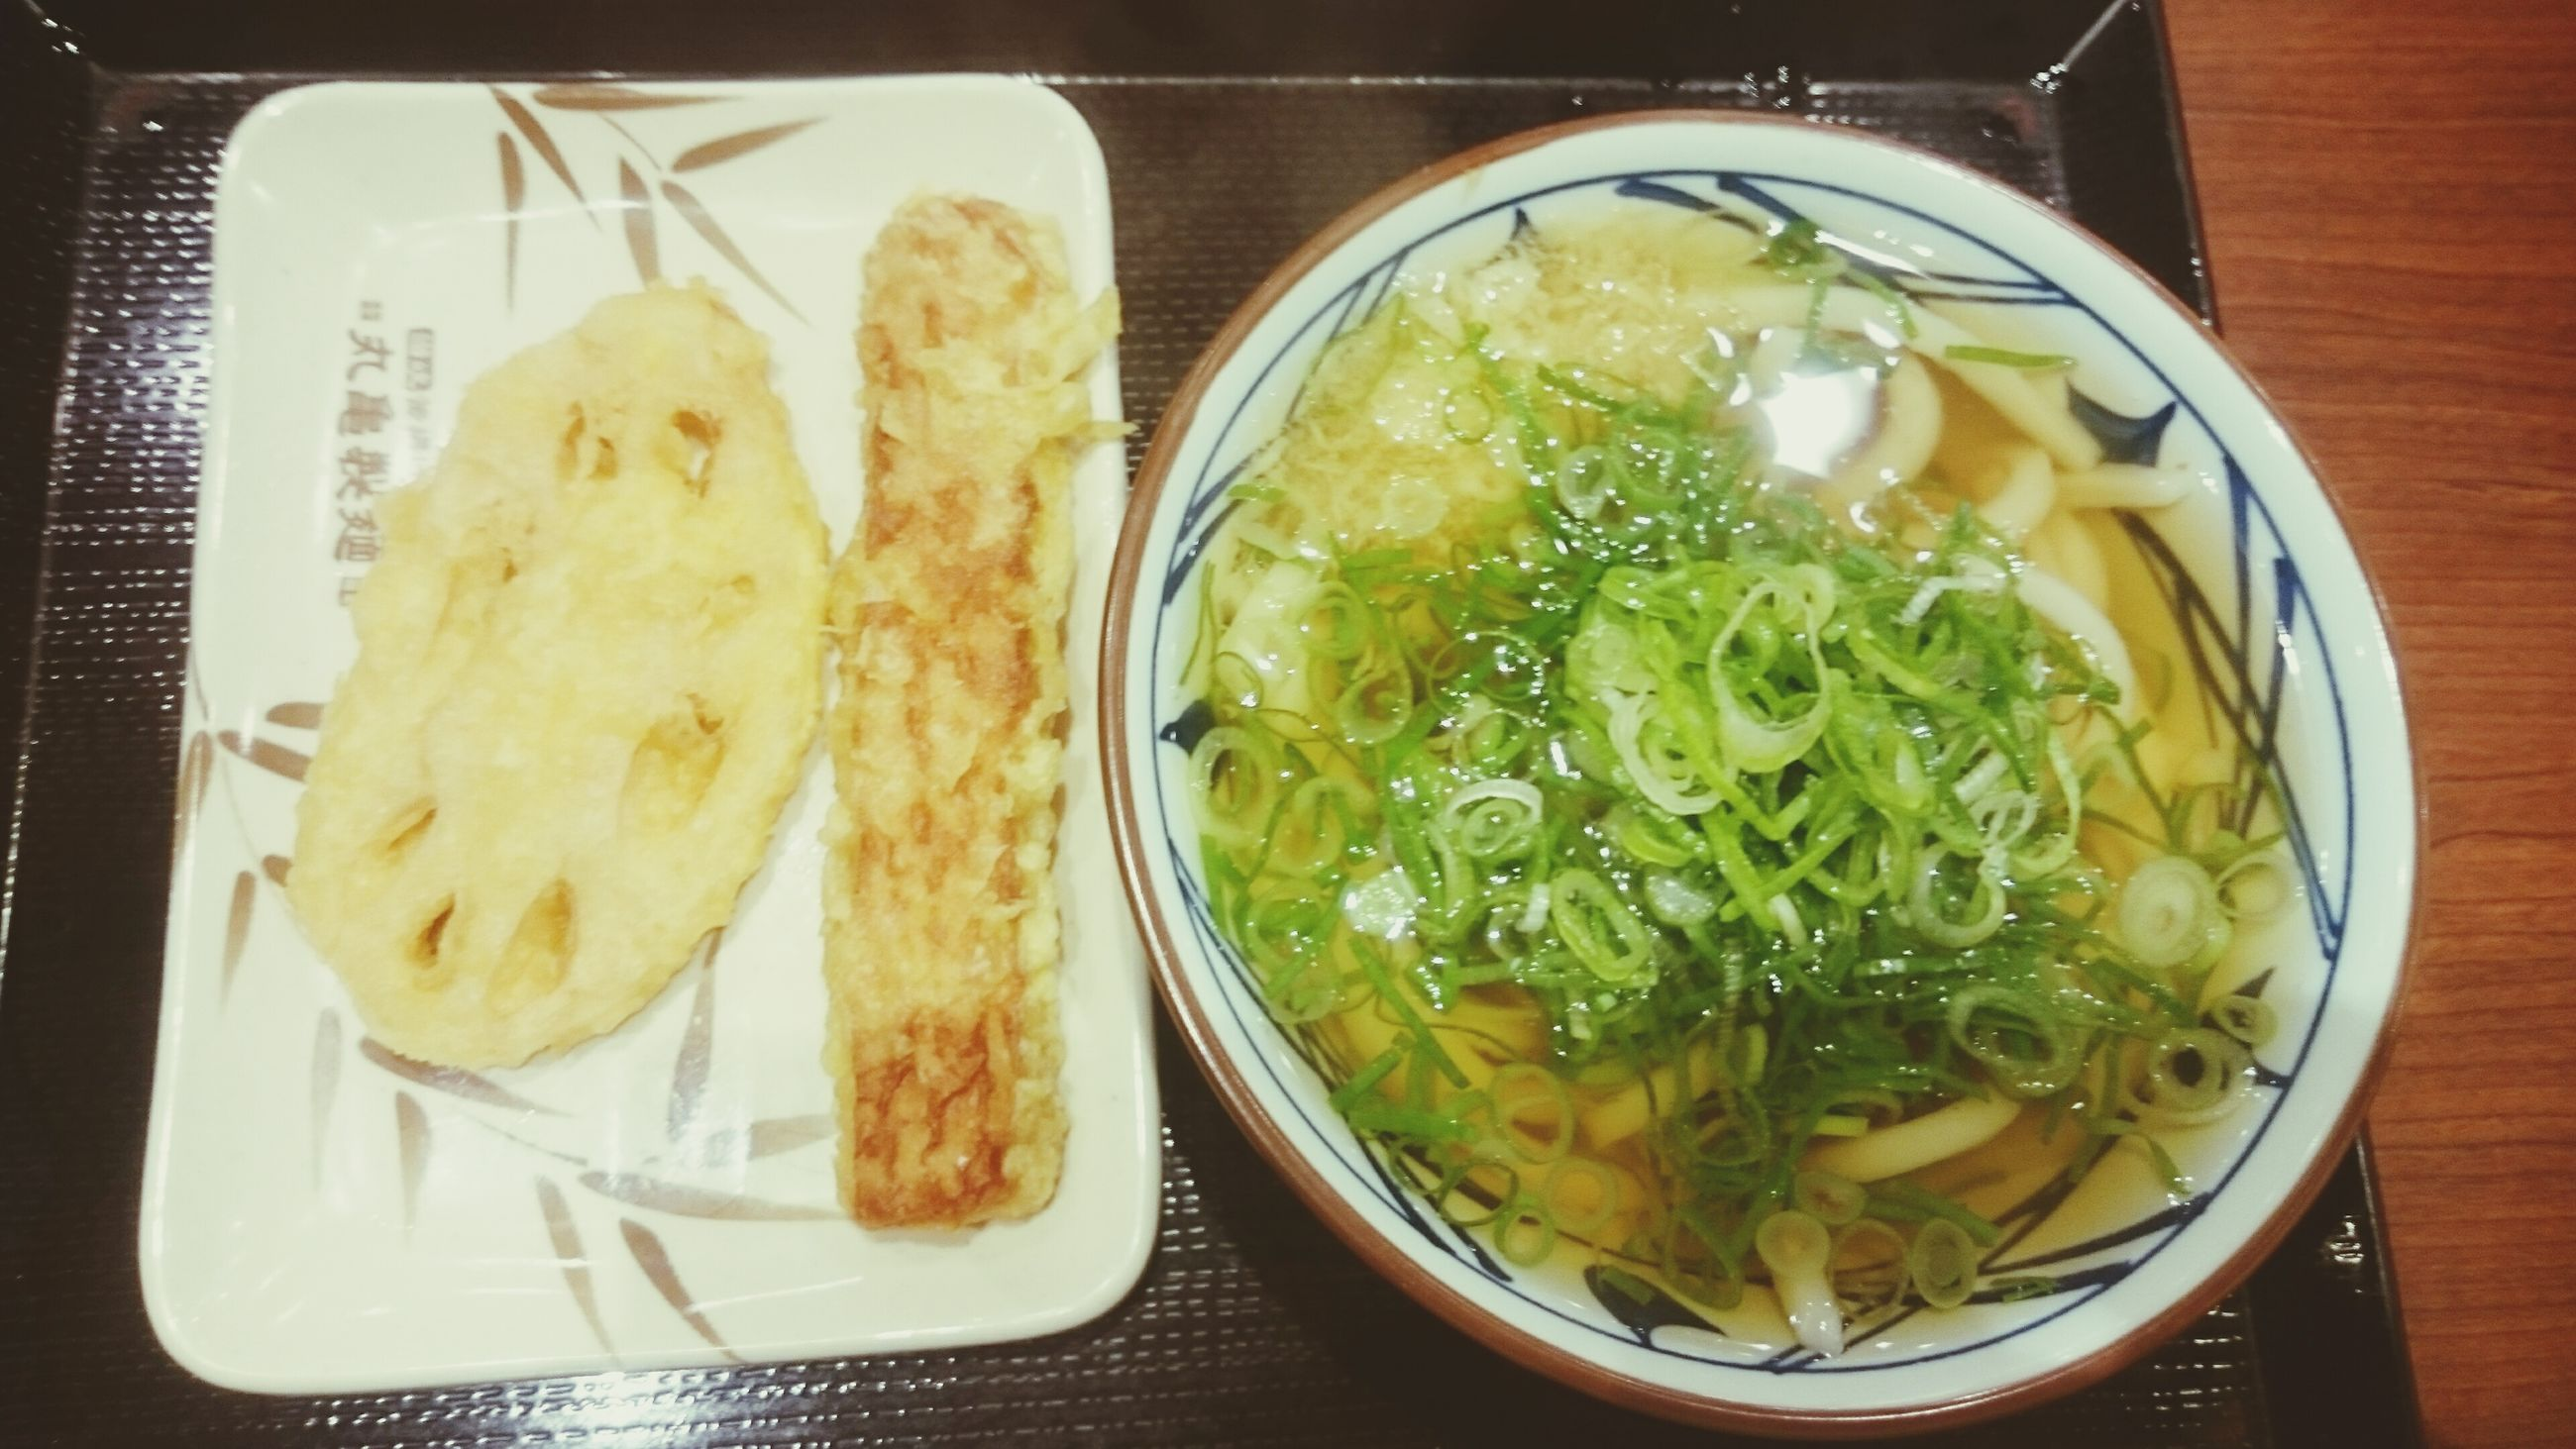 food and drink, food, freshness, indoors, ready-to-eat, healthy eating, plate, table, bowl, meal, still life, serving size, soup, close-up, high angle view, vegetable, directly above, lunch, noodles, served